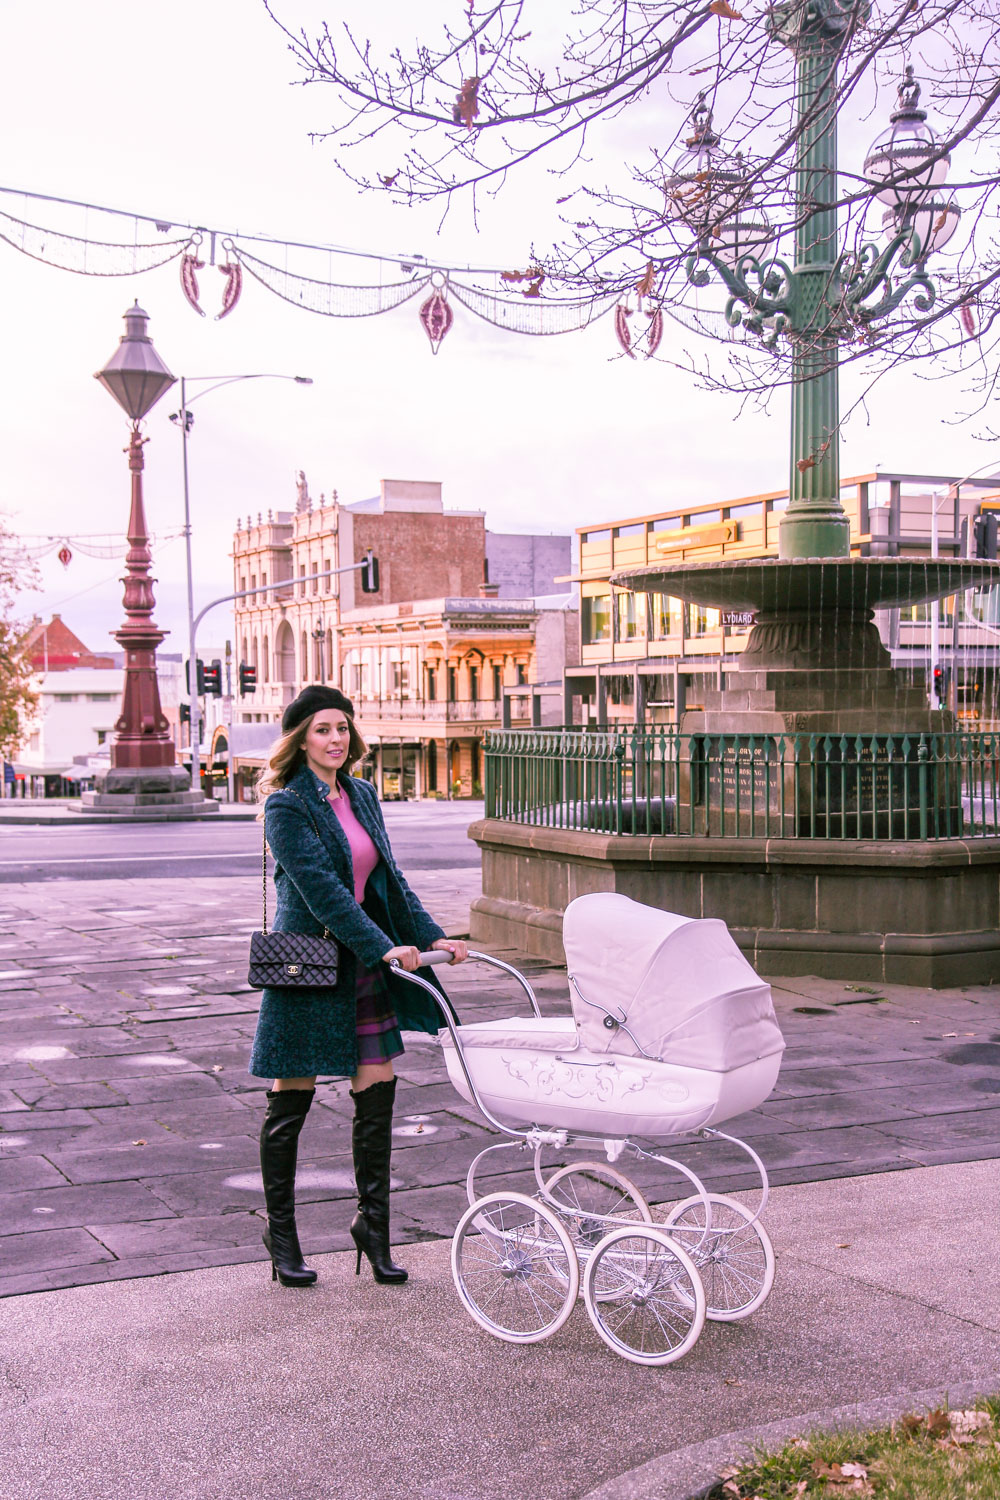 Goldfields Girl walking in Ballarat with vintage pram dressed in Alannah Hill top and skirt